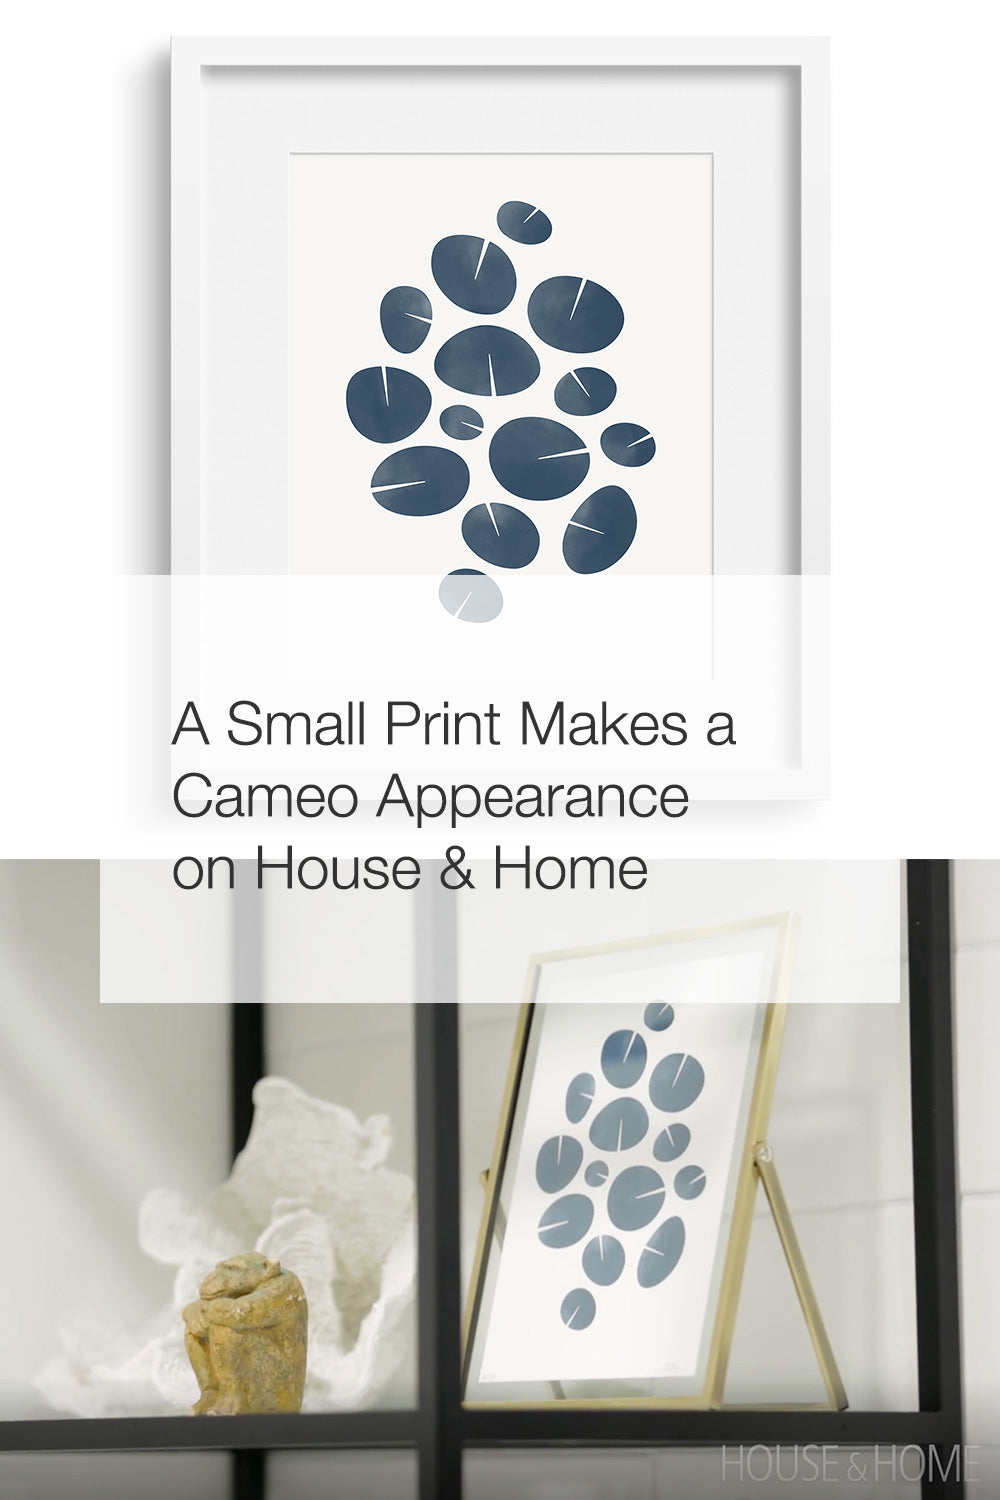 A Small Print Makes a Cameo Appearance on House & Home